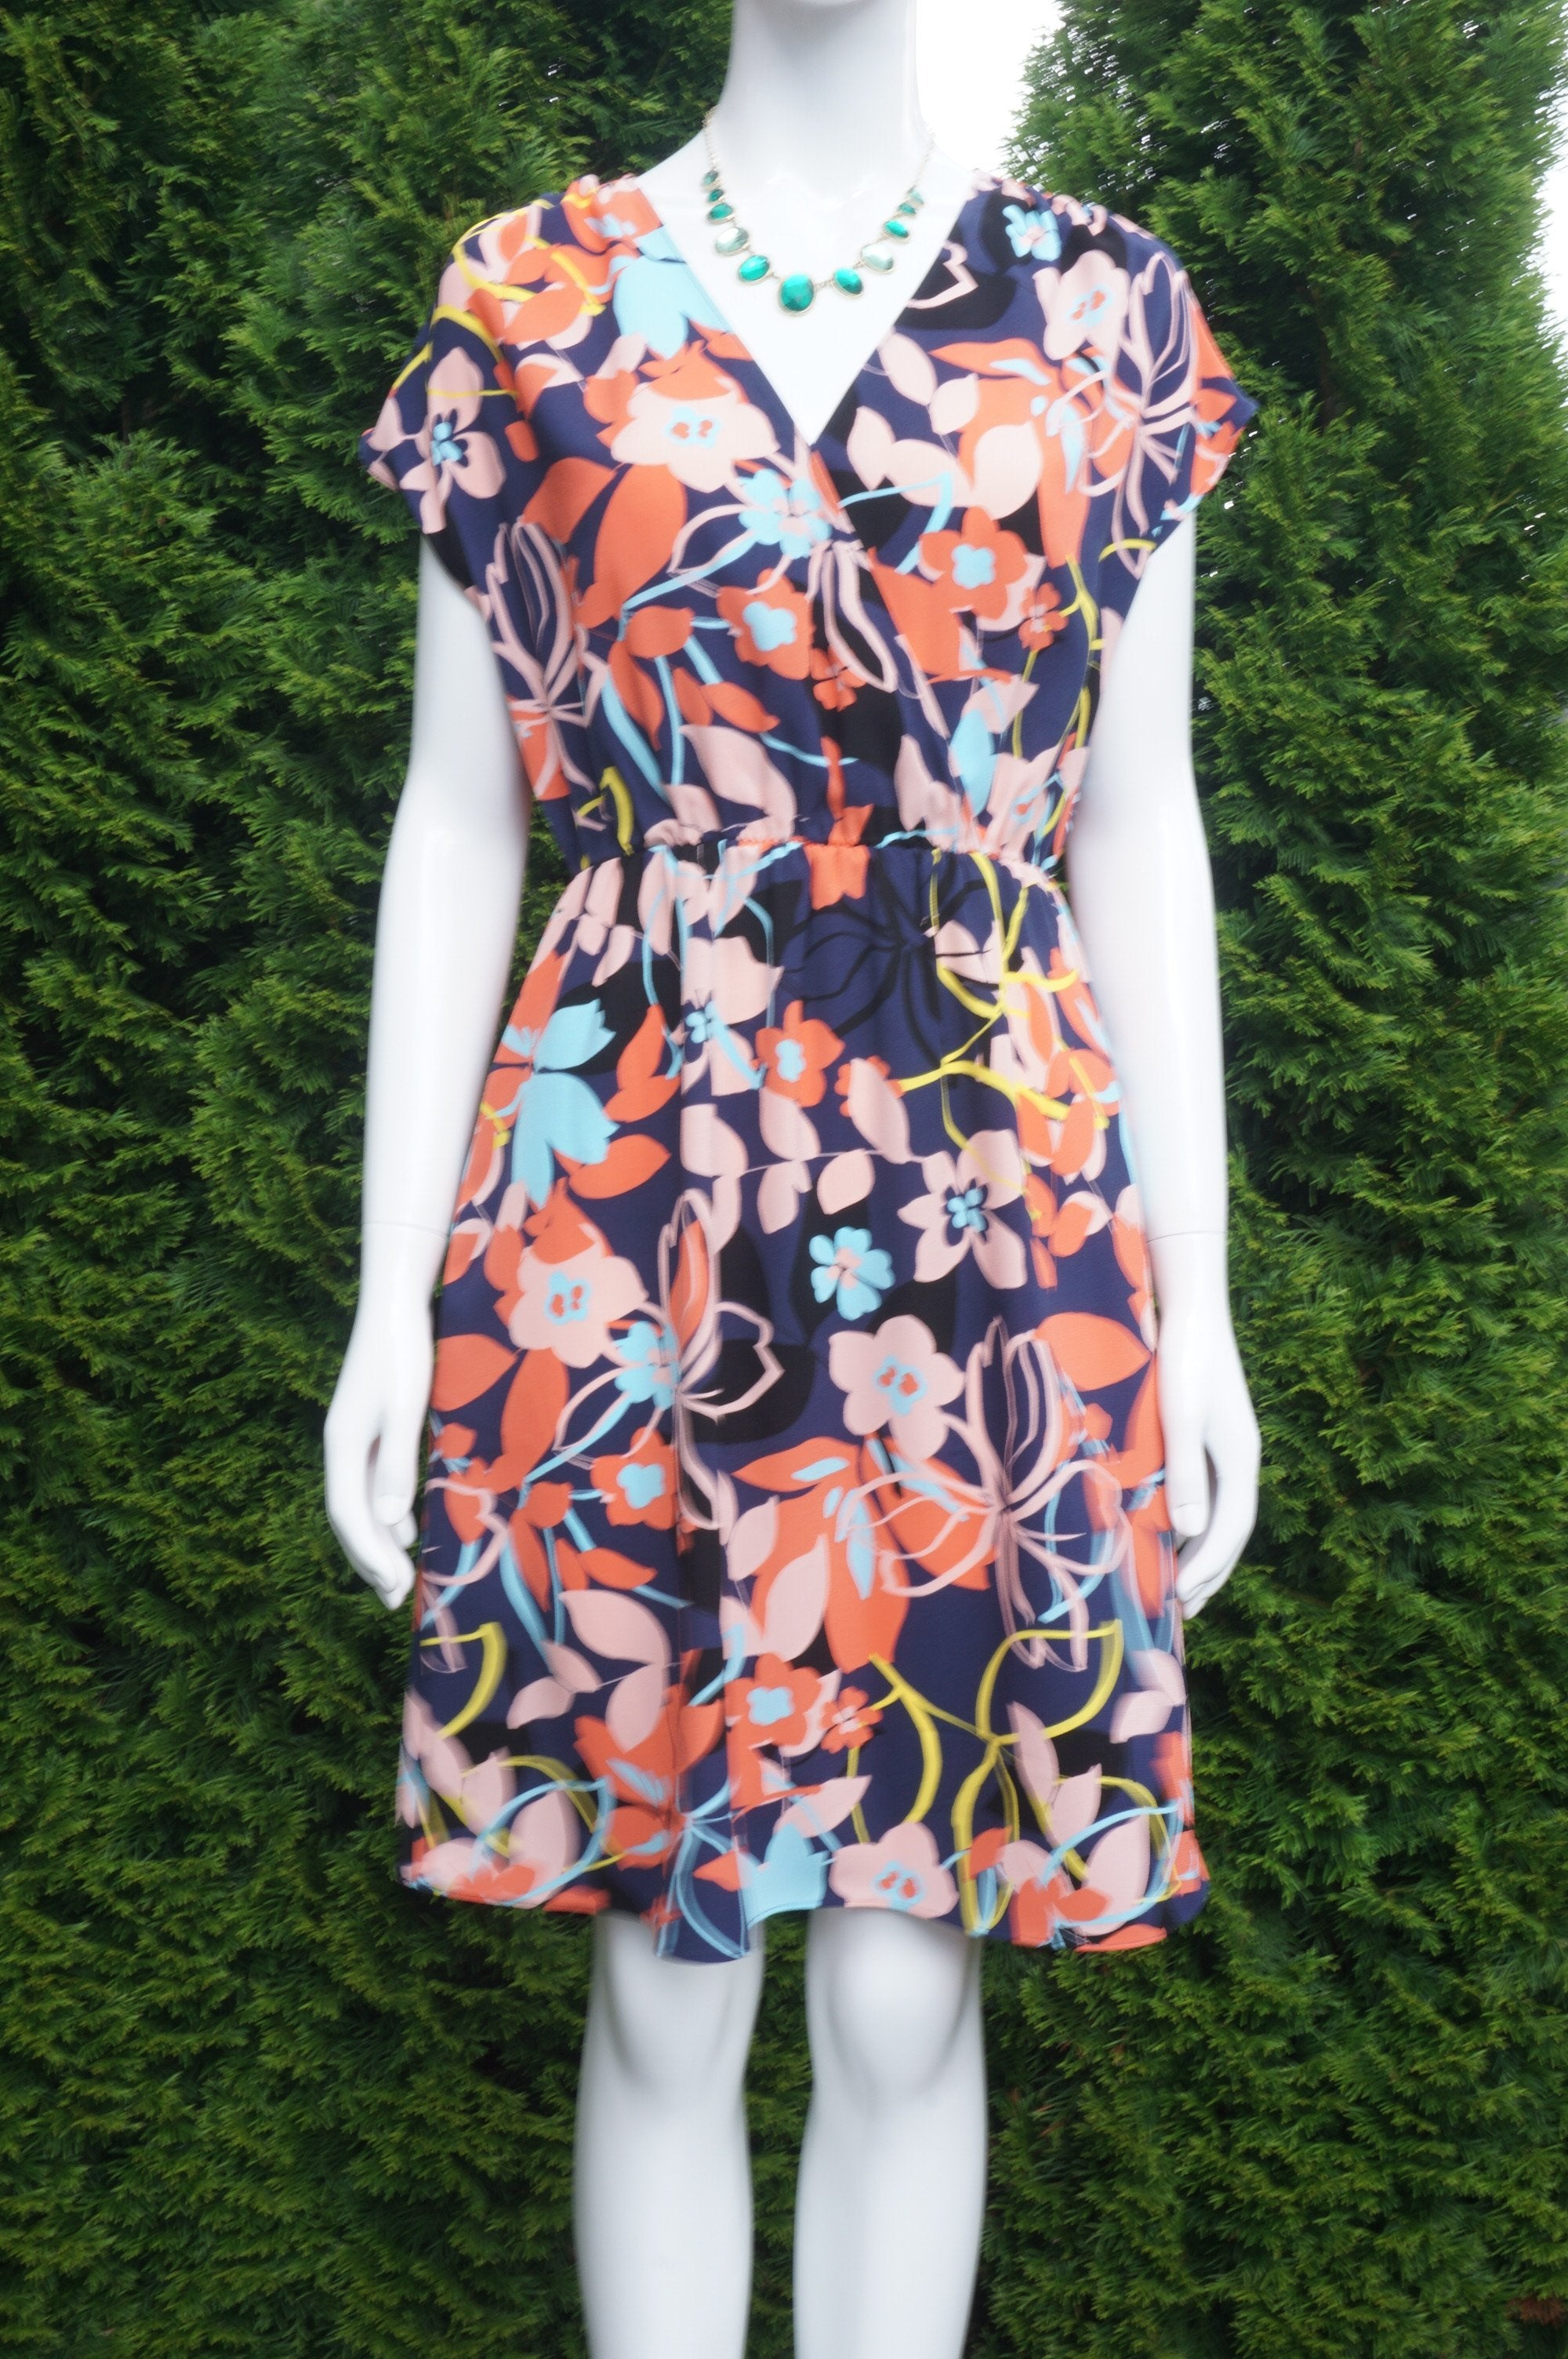 Halogen Floral Summer Dress with Elastic Waistband, Measurements: Bust 38 inches, waist 27 inches (when elastic is relaxed) Length 37 inches. Relaxed fit. Like new condition., Pink, Blue, 100% Polyester, women's Dresses & Rompers, women's Pink, Blue Dresses & Rompers, Halogen women's Dresses & Rompers, floral summer dress, loose fitting dress, cute summer dress